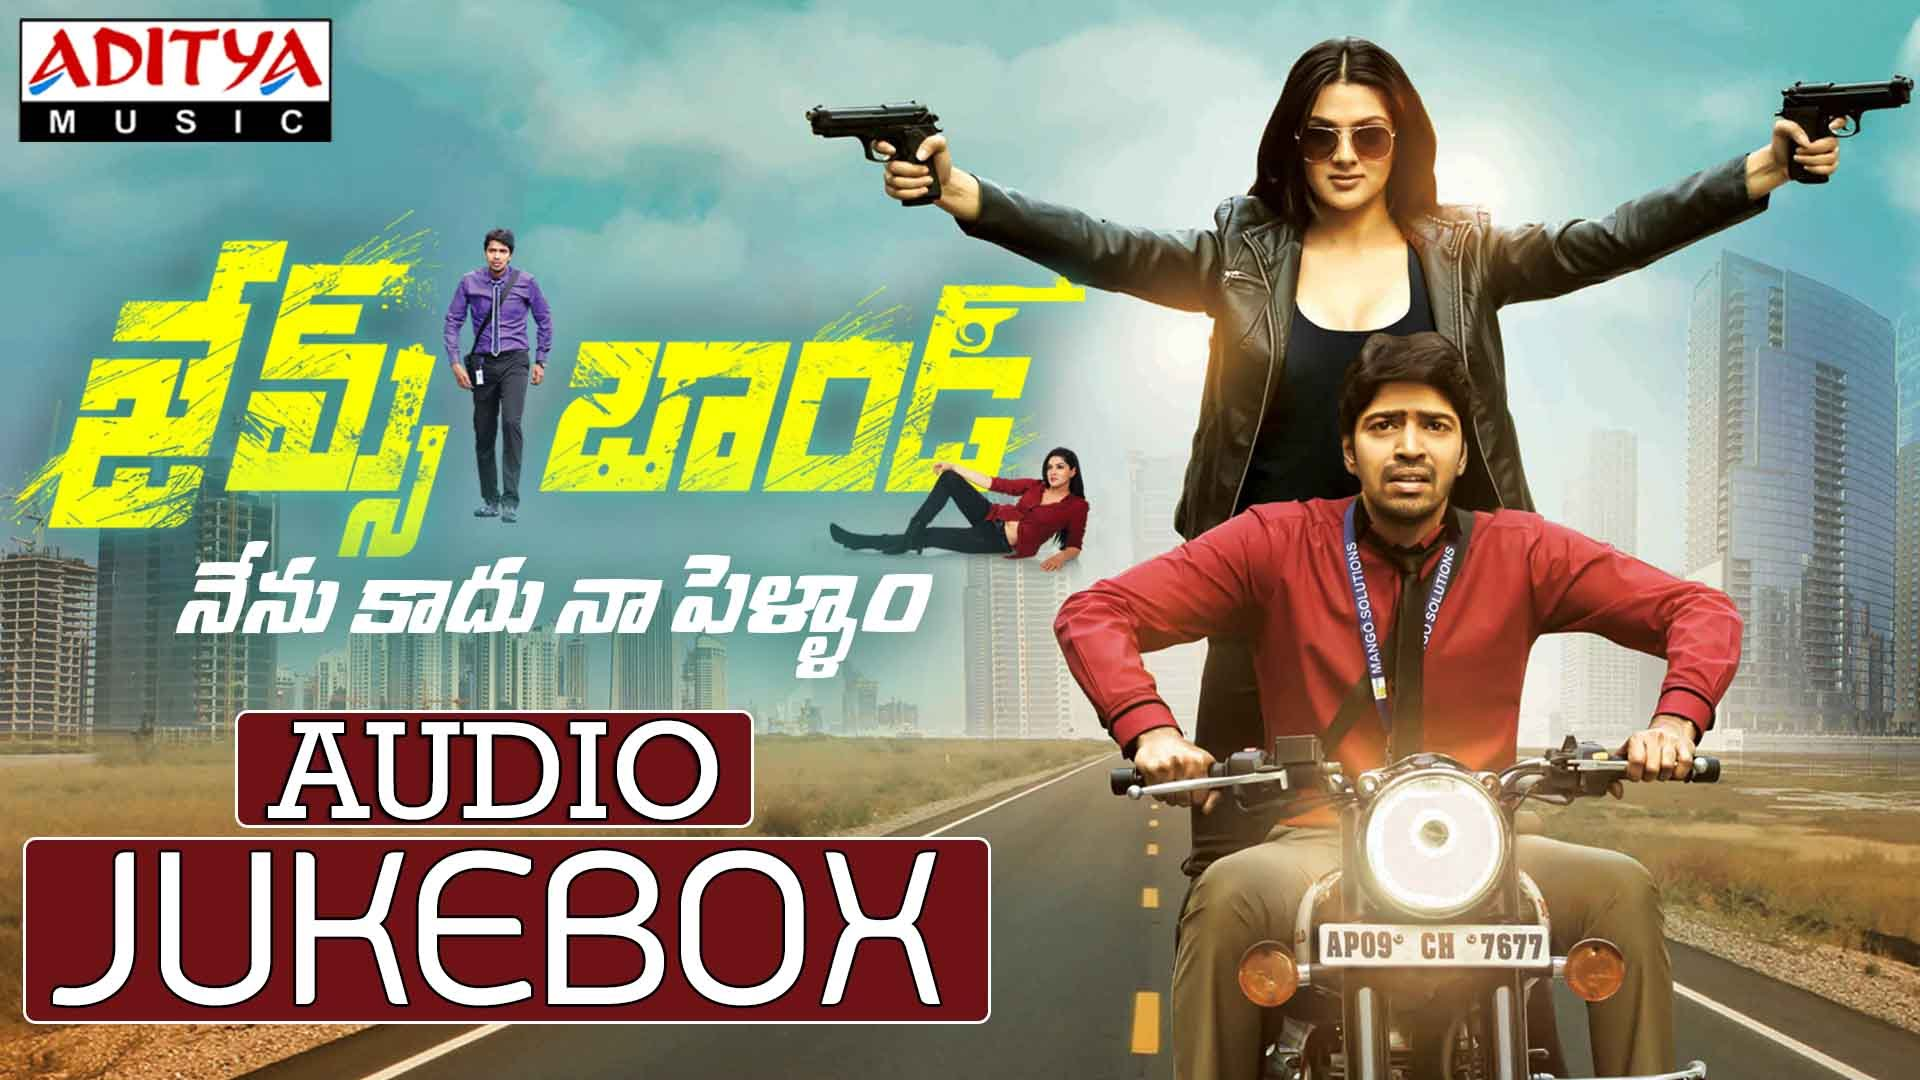 James bond (2015) mp3 songs full telugu mp3 songs « teluguism.